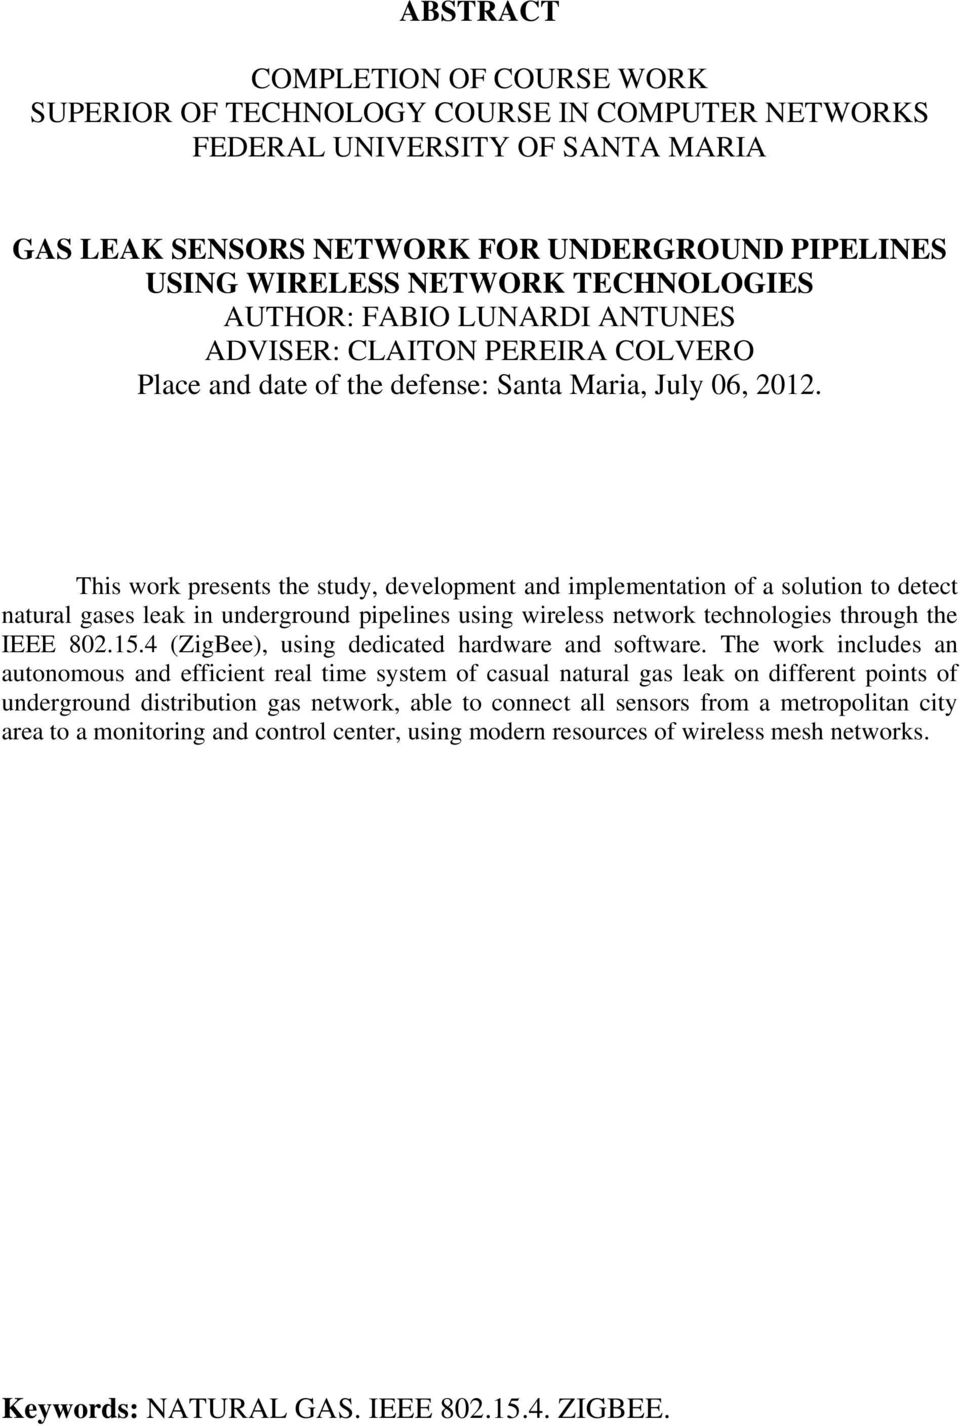 This work presents the study, development and implementation of a solution to detect natural gases leak in underground pipelines using wireless network technologies through the IEEE 802.15.